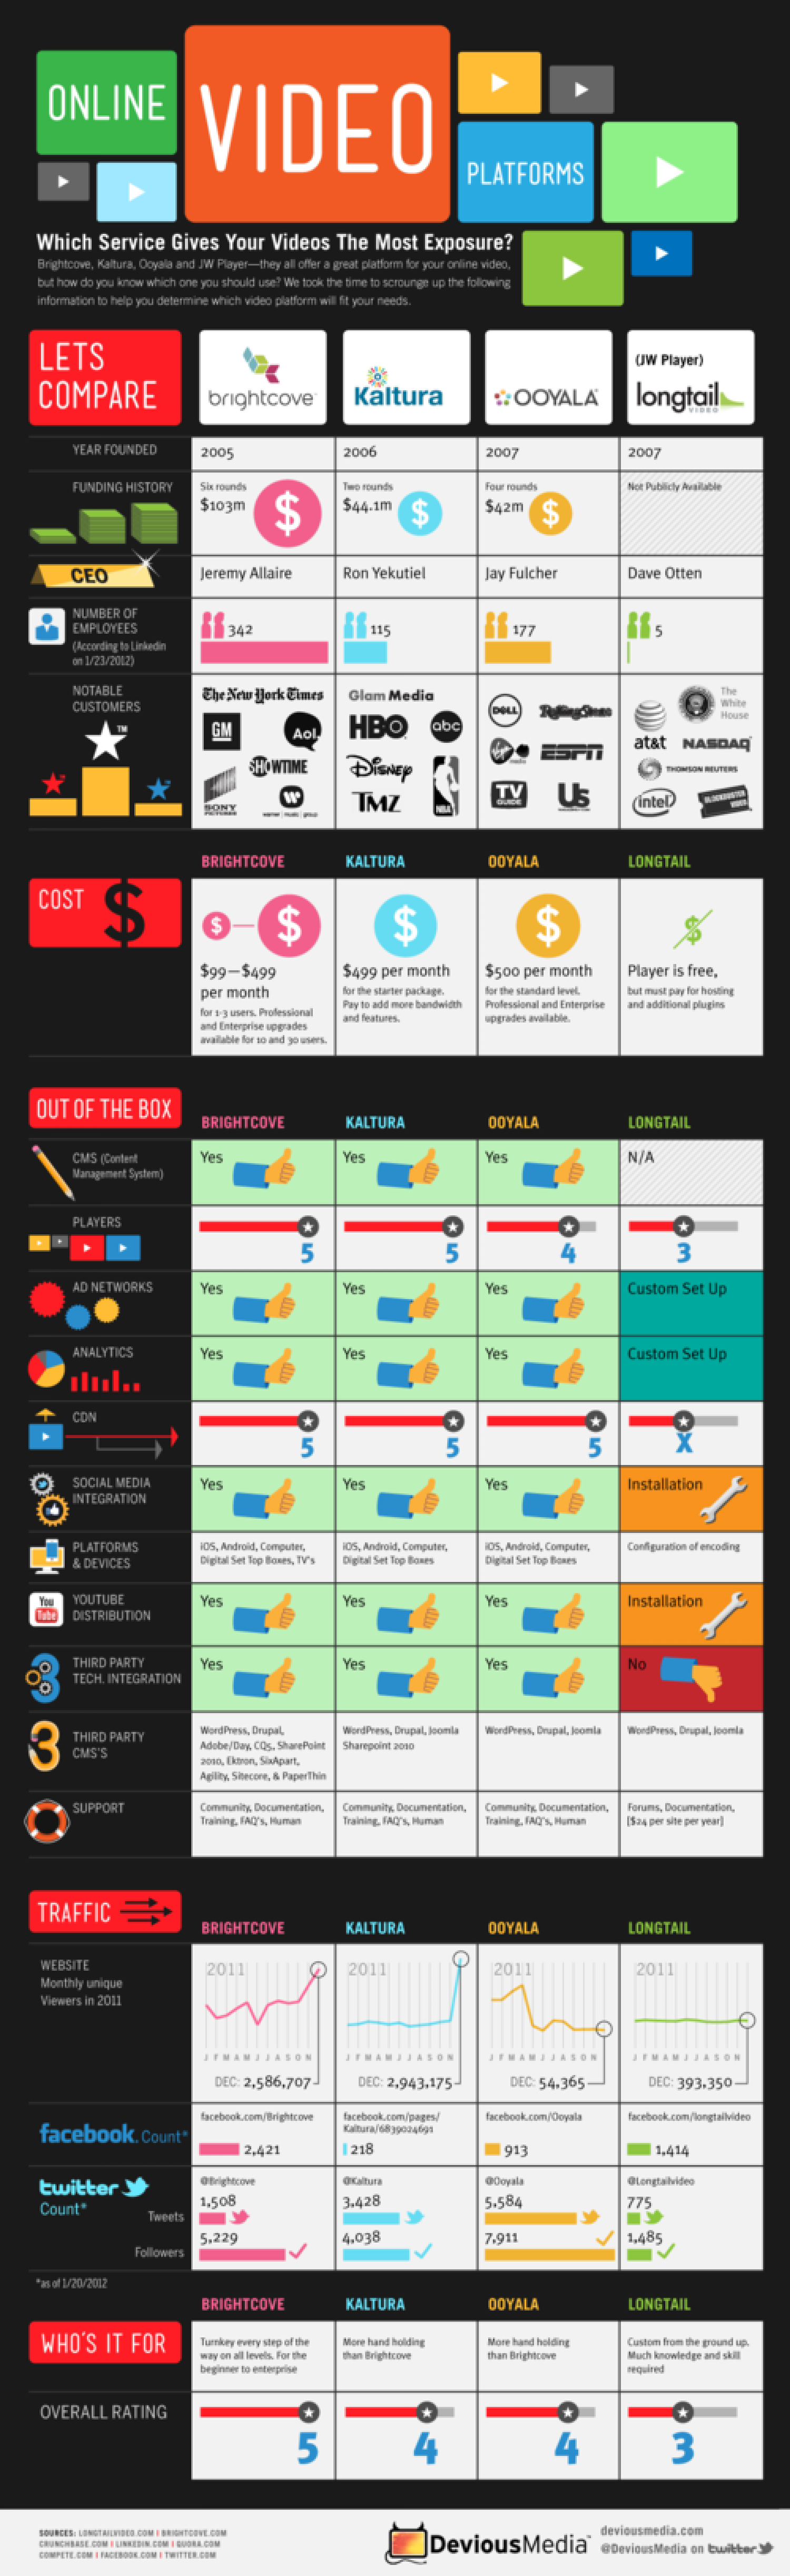 Which Service Gives Your Videos The Most Exposure? Infographic